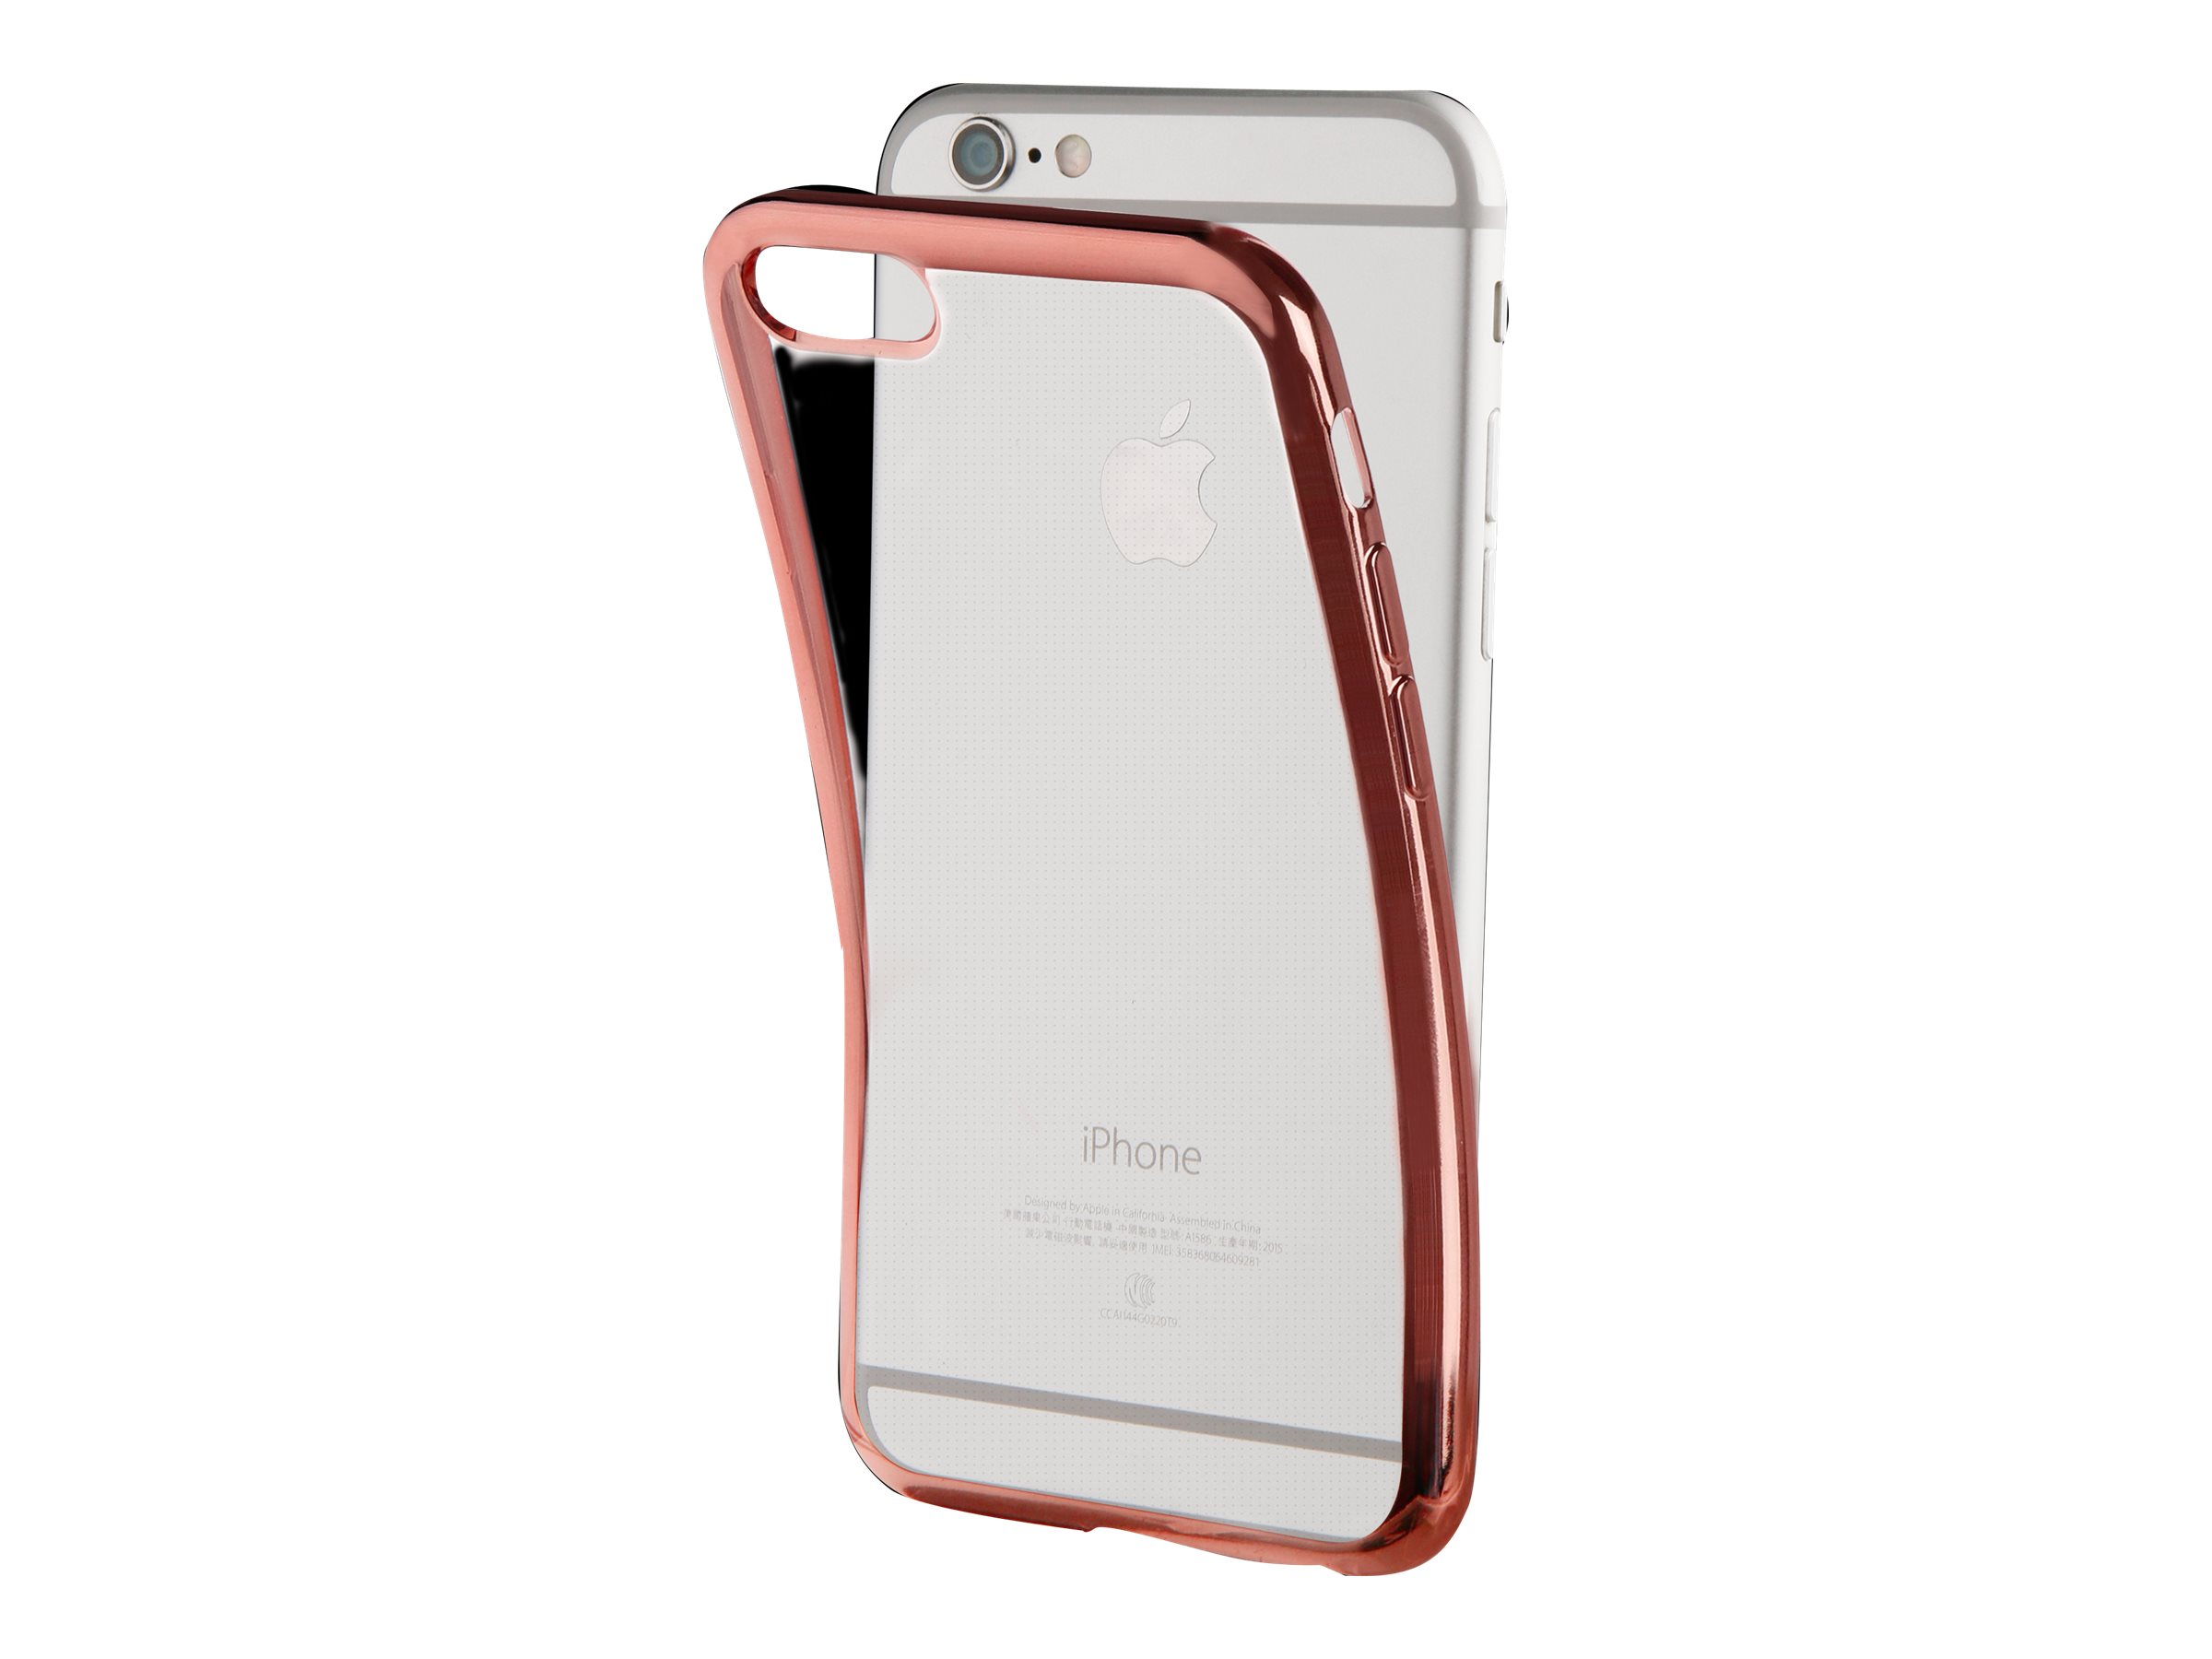 Muvit - Coque de protection pour iPhone 7 Plus - rose